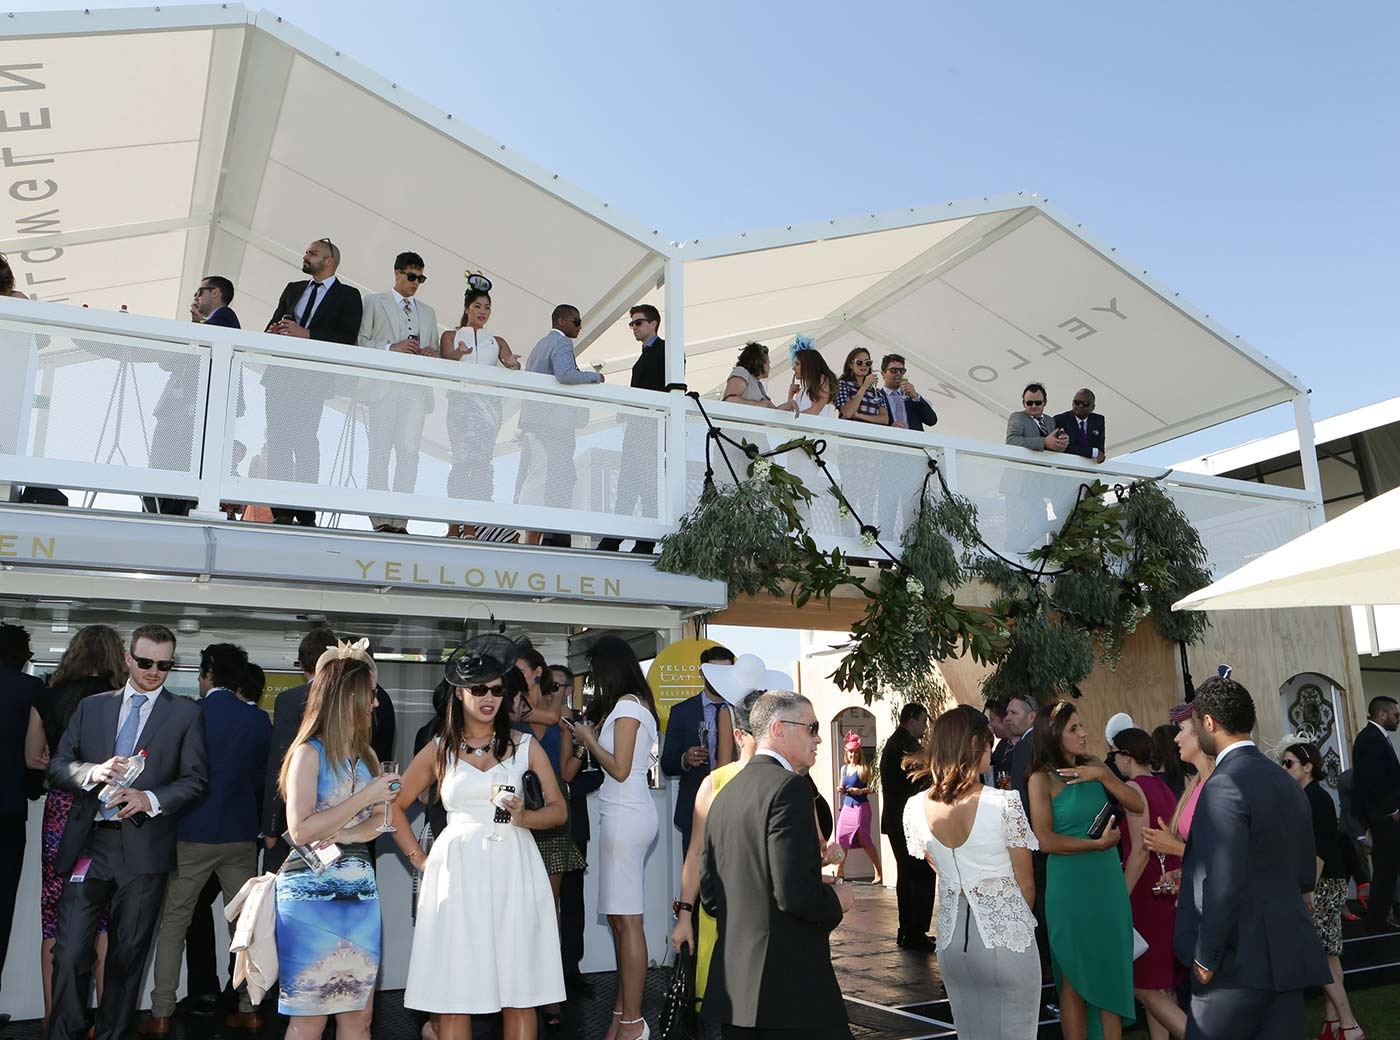 Yellowglen-Terrace-Shipping-Container-Hospitality-Activation-10